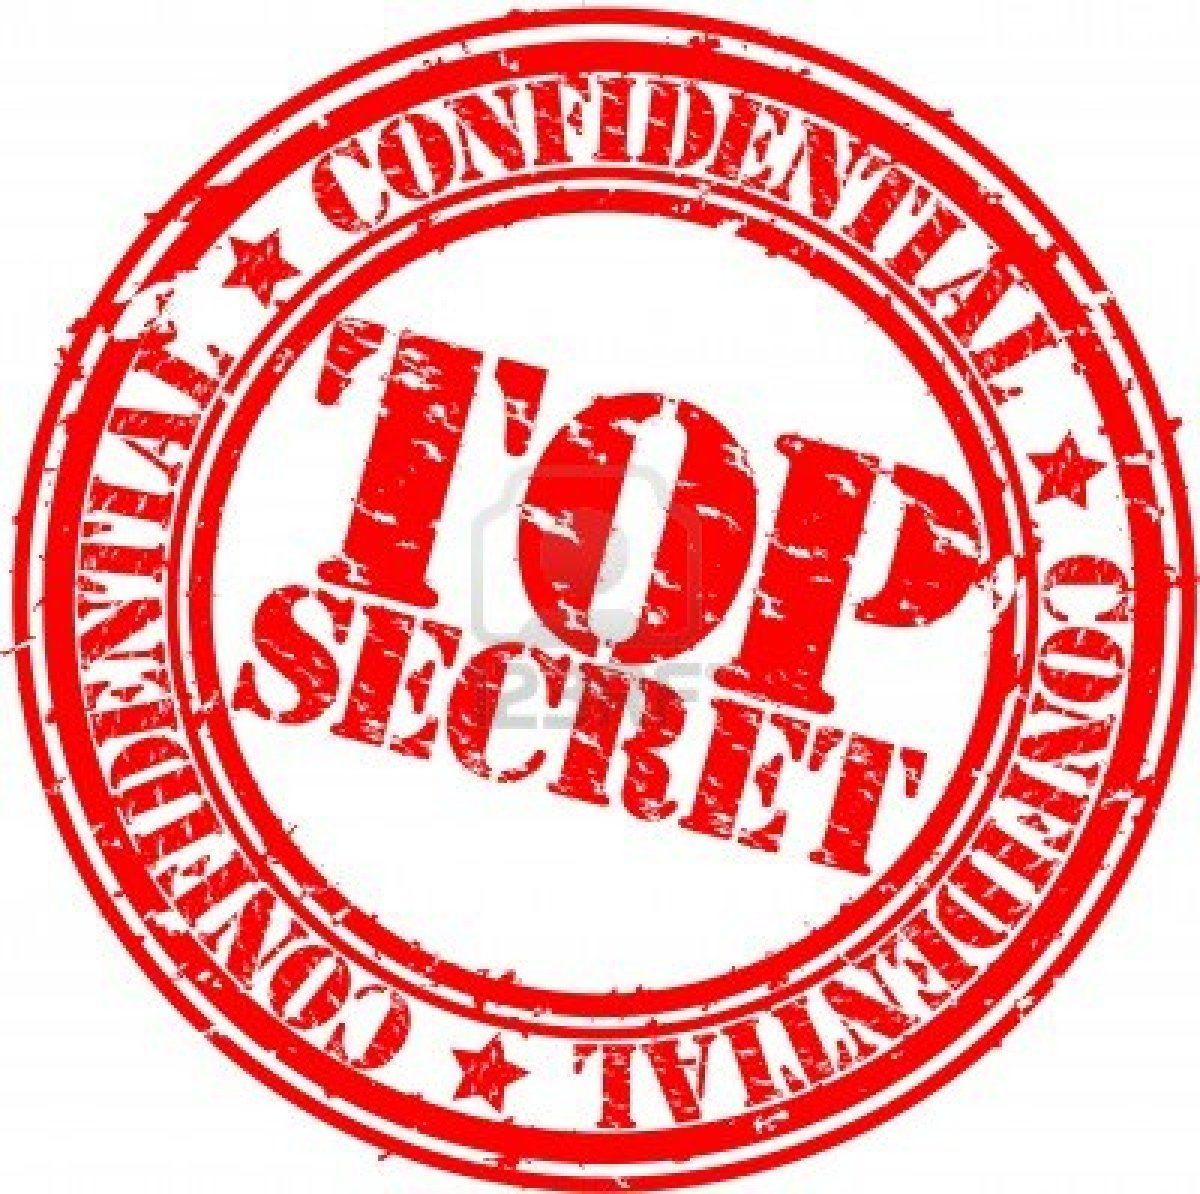 Top Secret Clipart - Clipart Kid